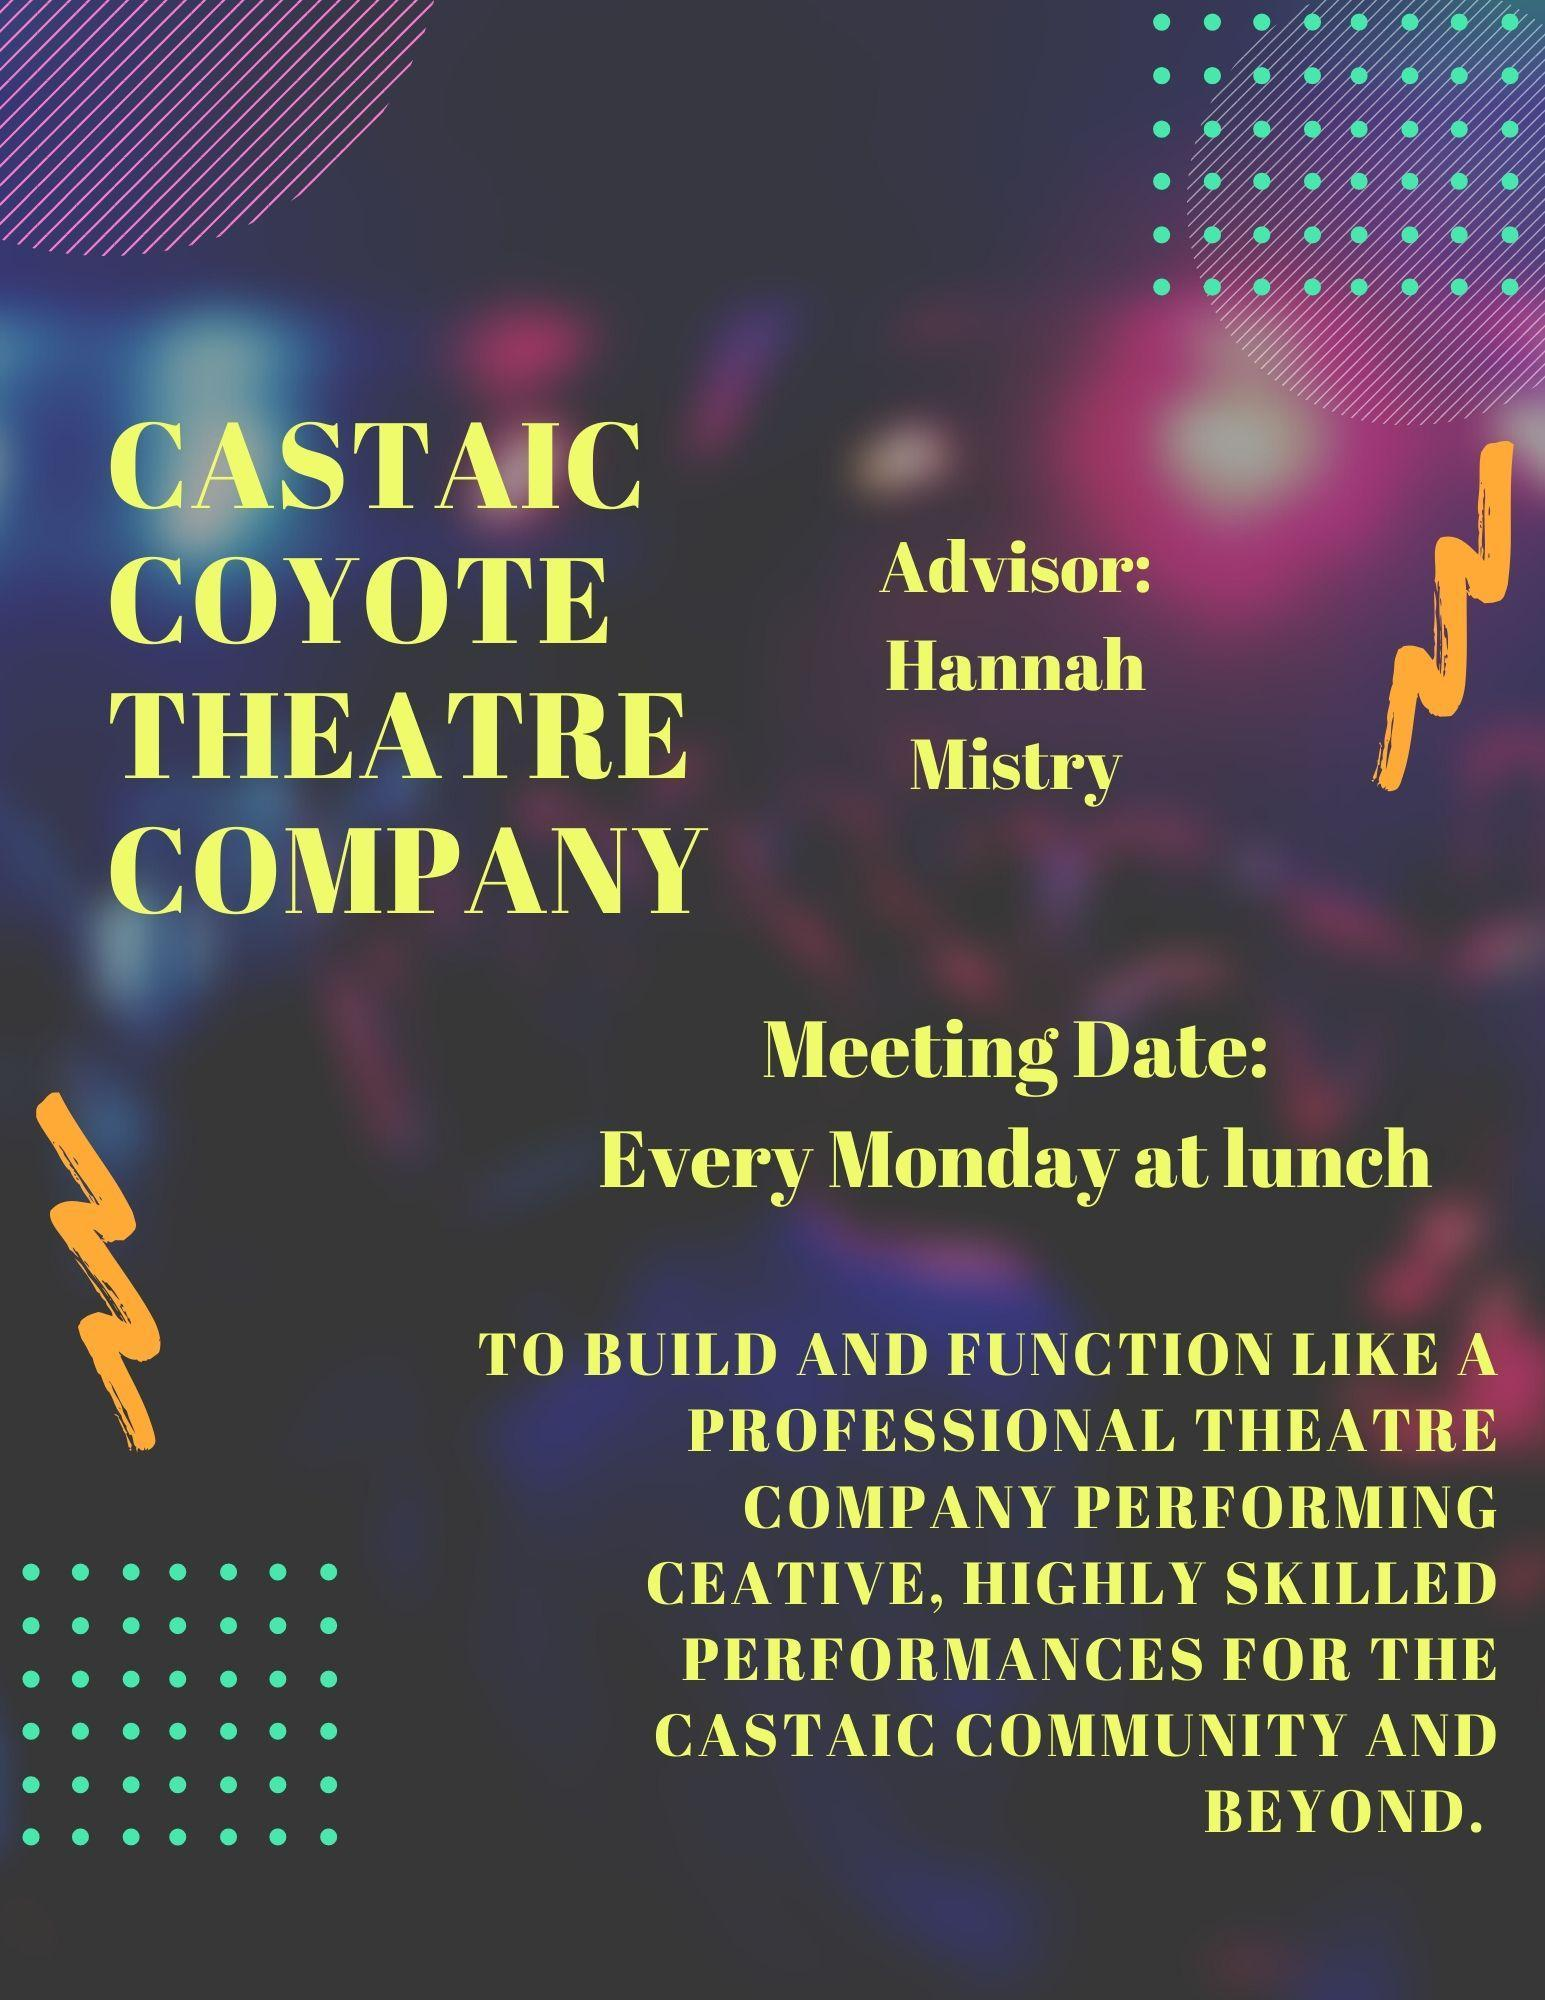 Castaic Coyote Theater Company